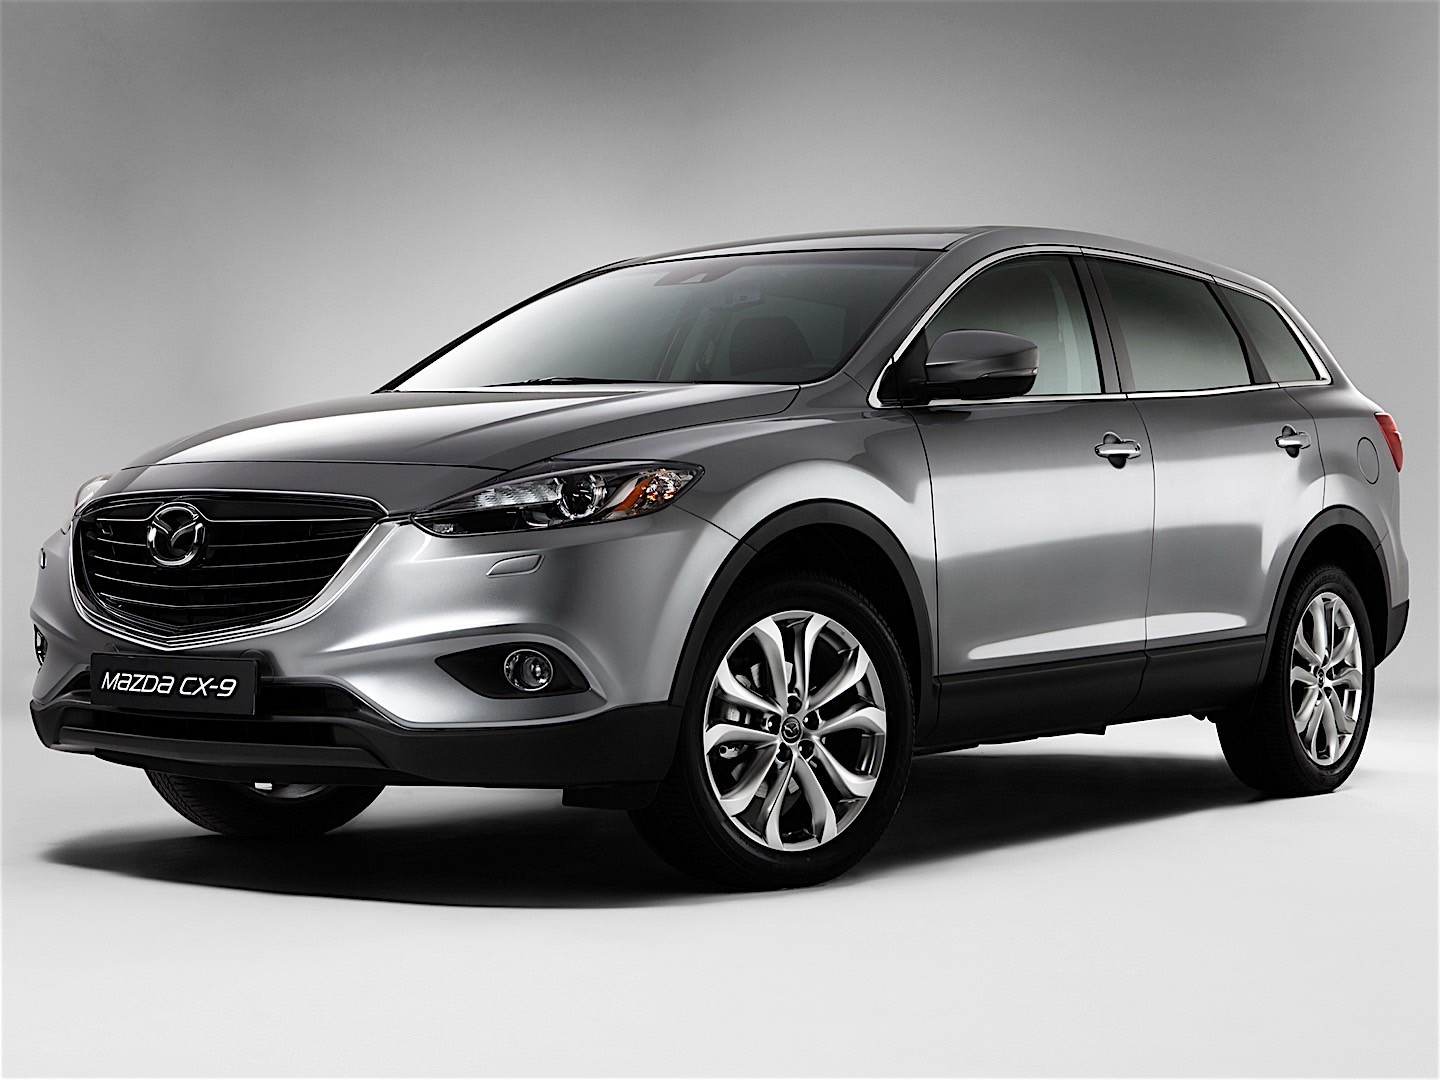 mazda cx 9 specs 2013 2014 2015 2016 autoevolution. Black Bedroom Furniture Sets. Home Design Ideas